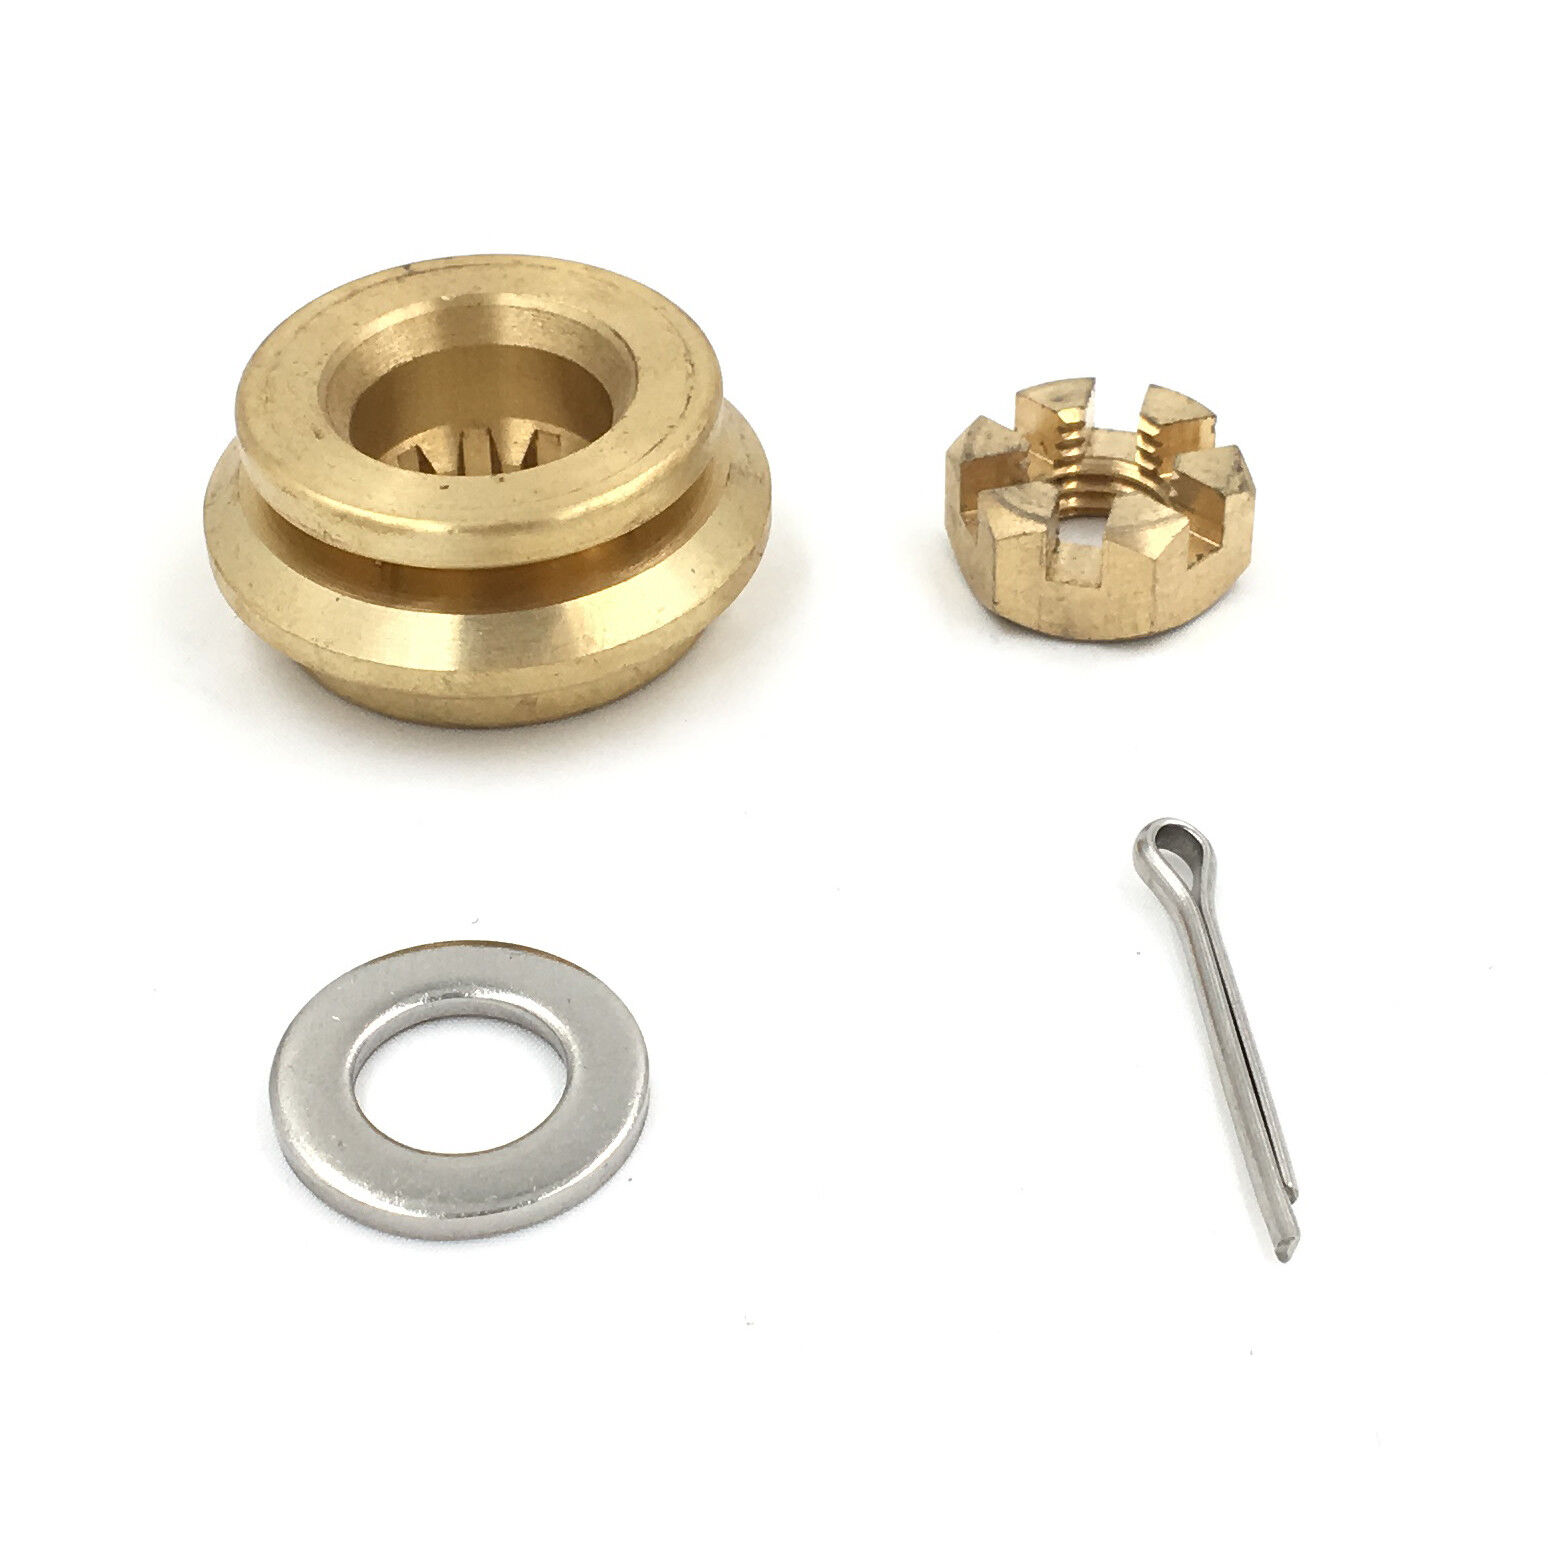 POLASTORM Hardware Kit Thrust Washer//Spacer//Nut//Cotter Pin for Propeller Honda Outboard Propeller 8-20HP